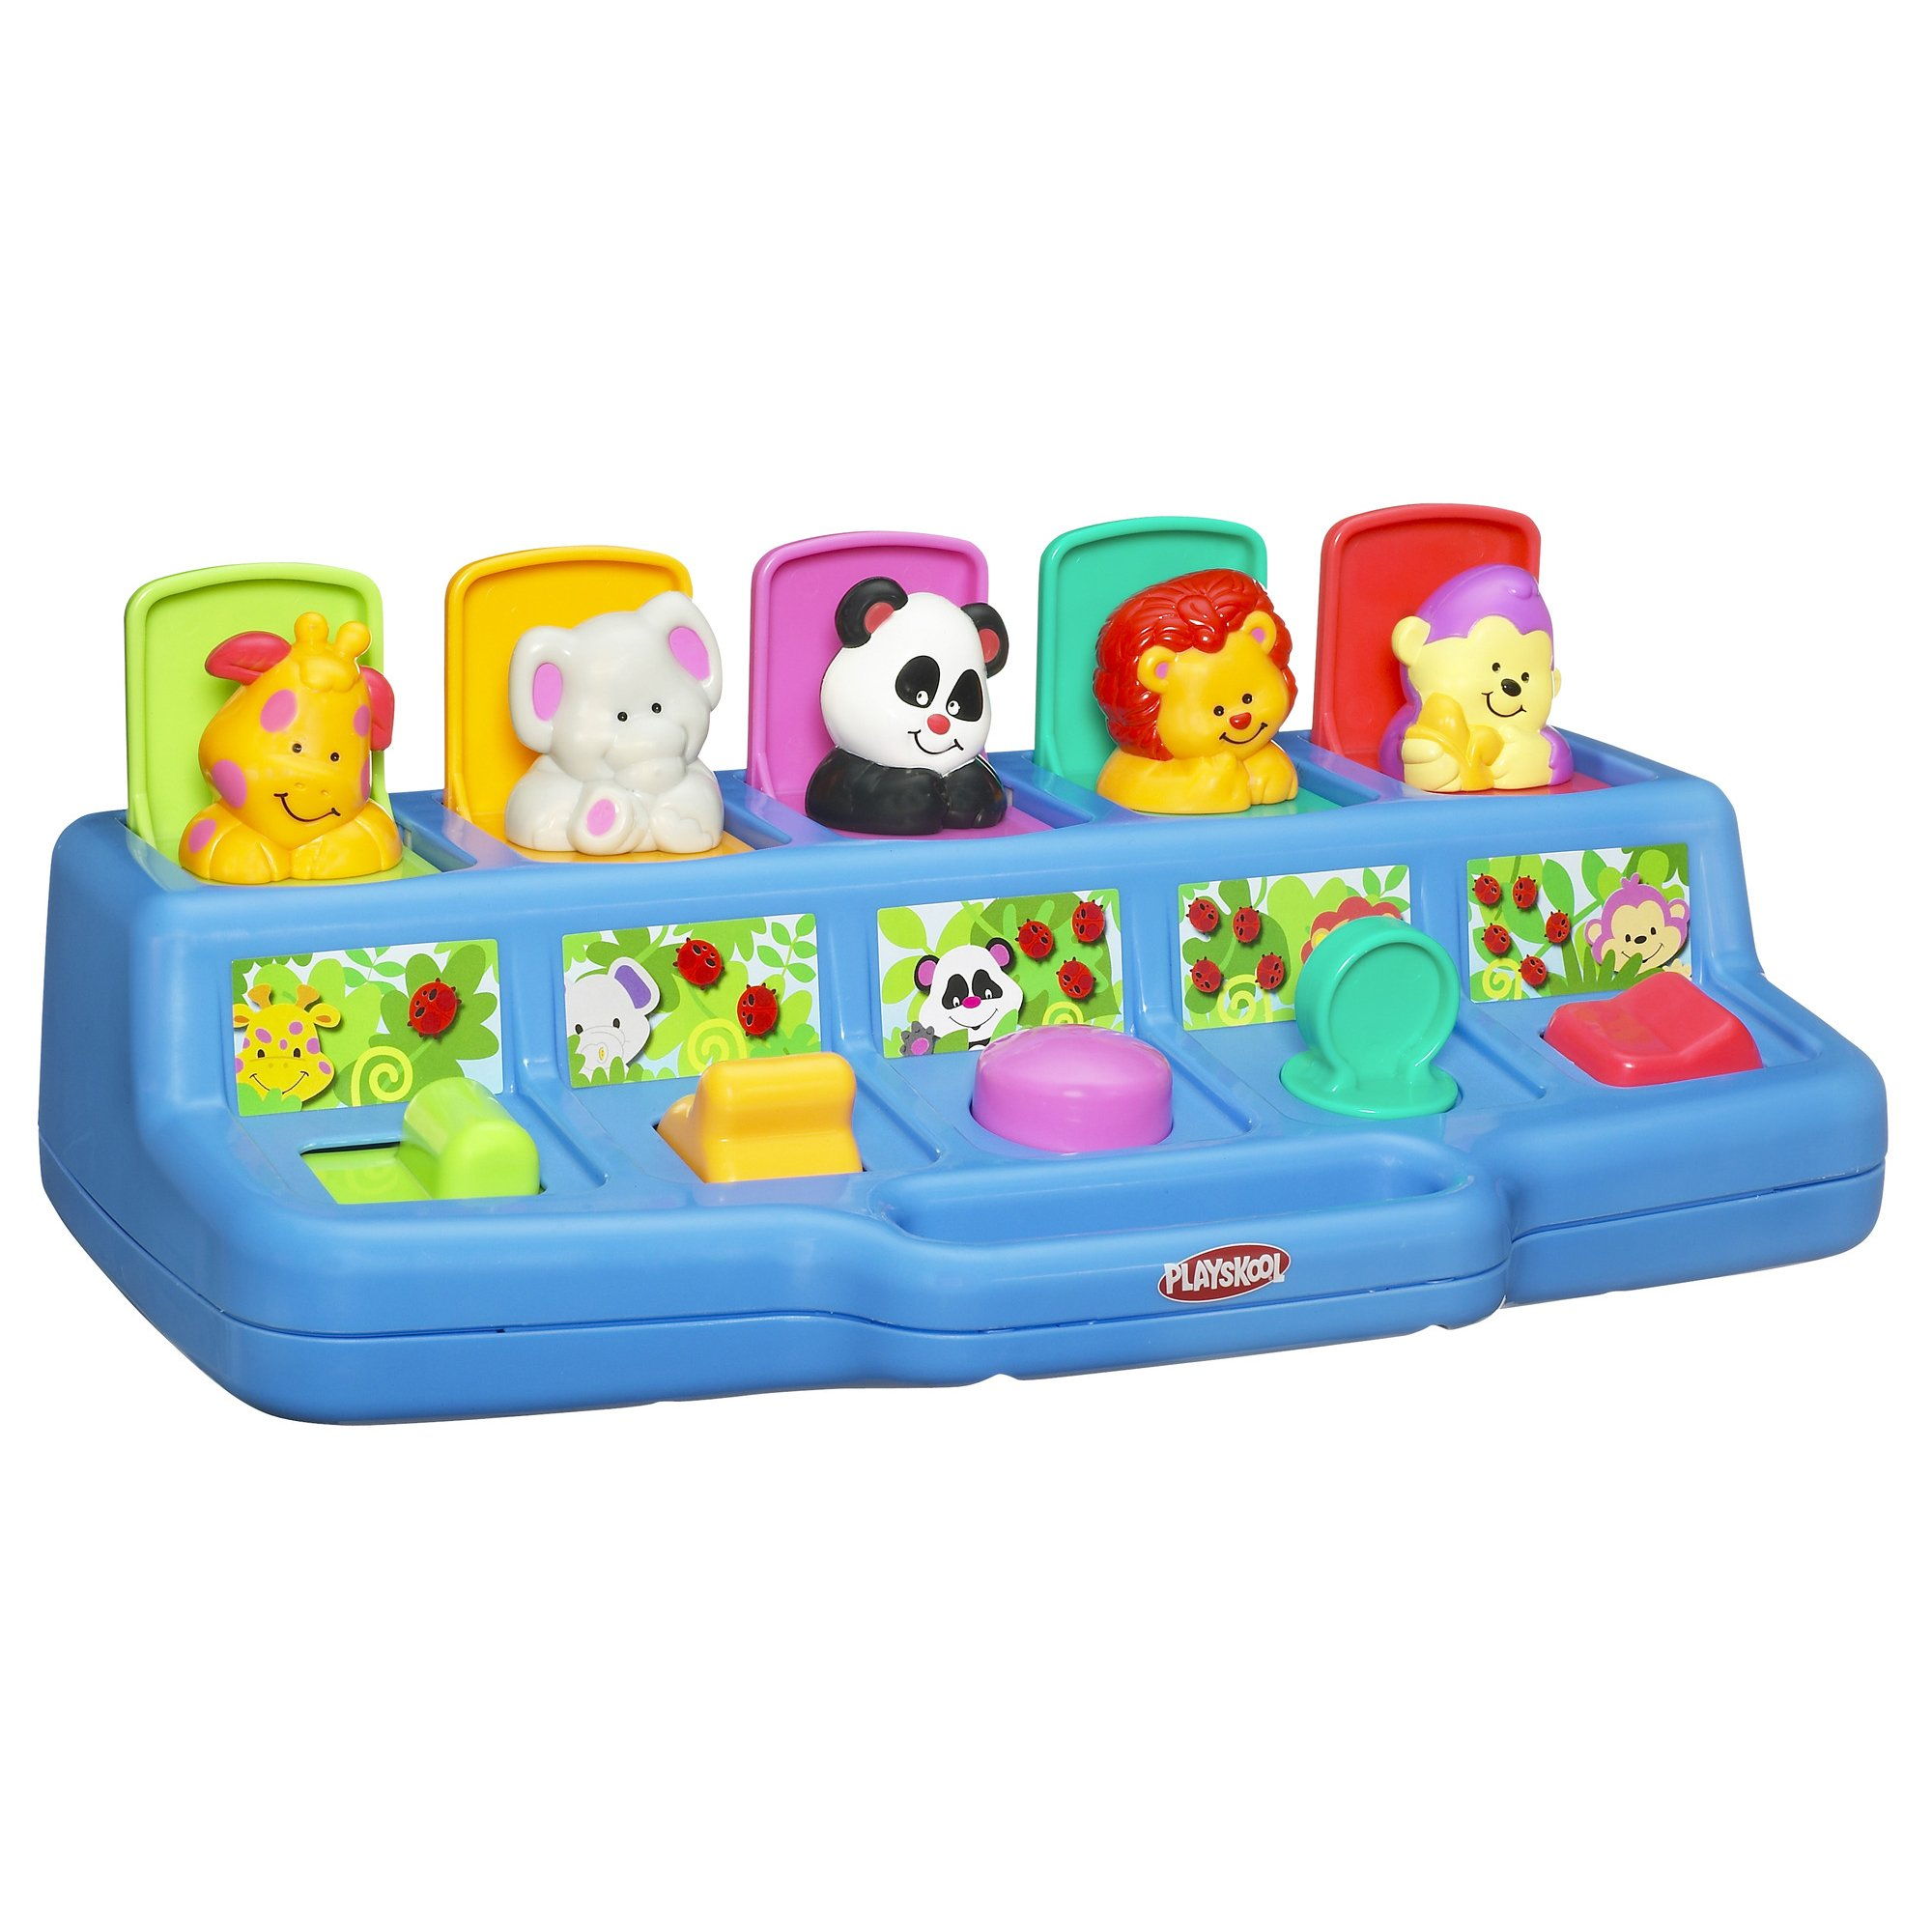 Playskool Poppin' Pals Pop-up Activity Toy for Babies and Toddlers Ages 9 Months and Up (Amazon Exclusive) by Playskool